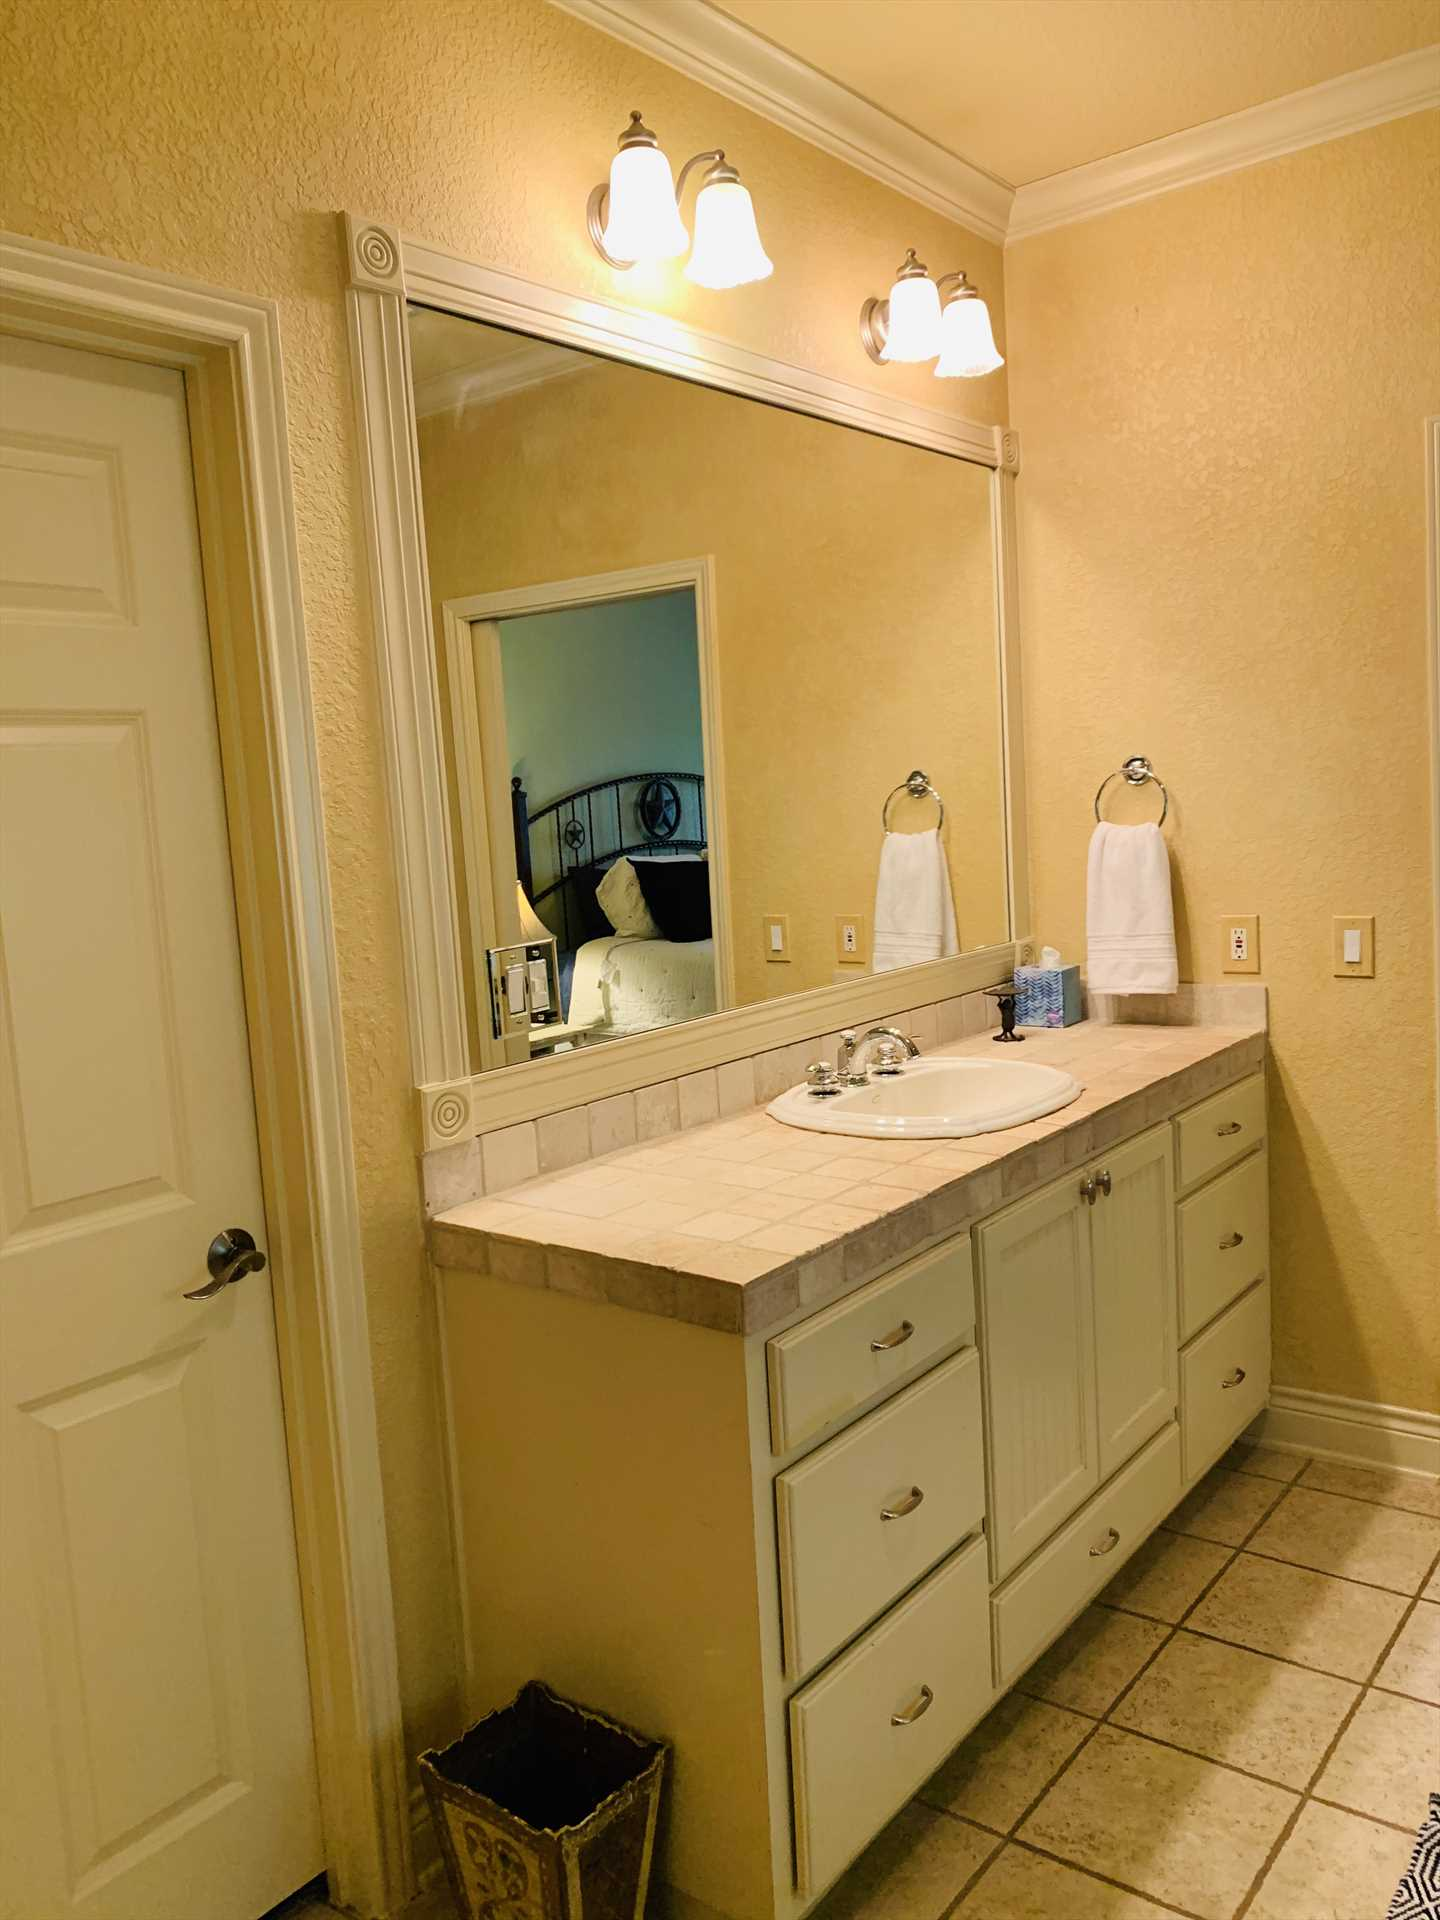 The master bath also includes a big vanity with plenty of counter space, a walk-in closet, and all bathrooms and bedrooms include plenty of soft and fluffy linens.